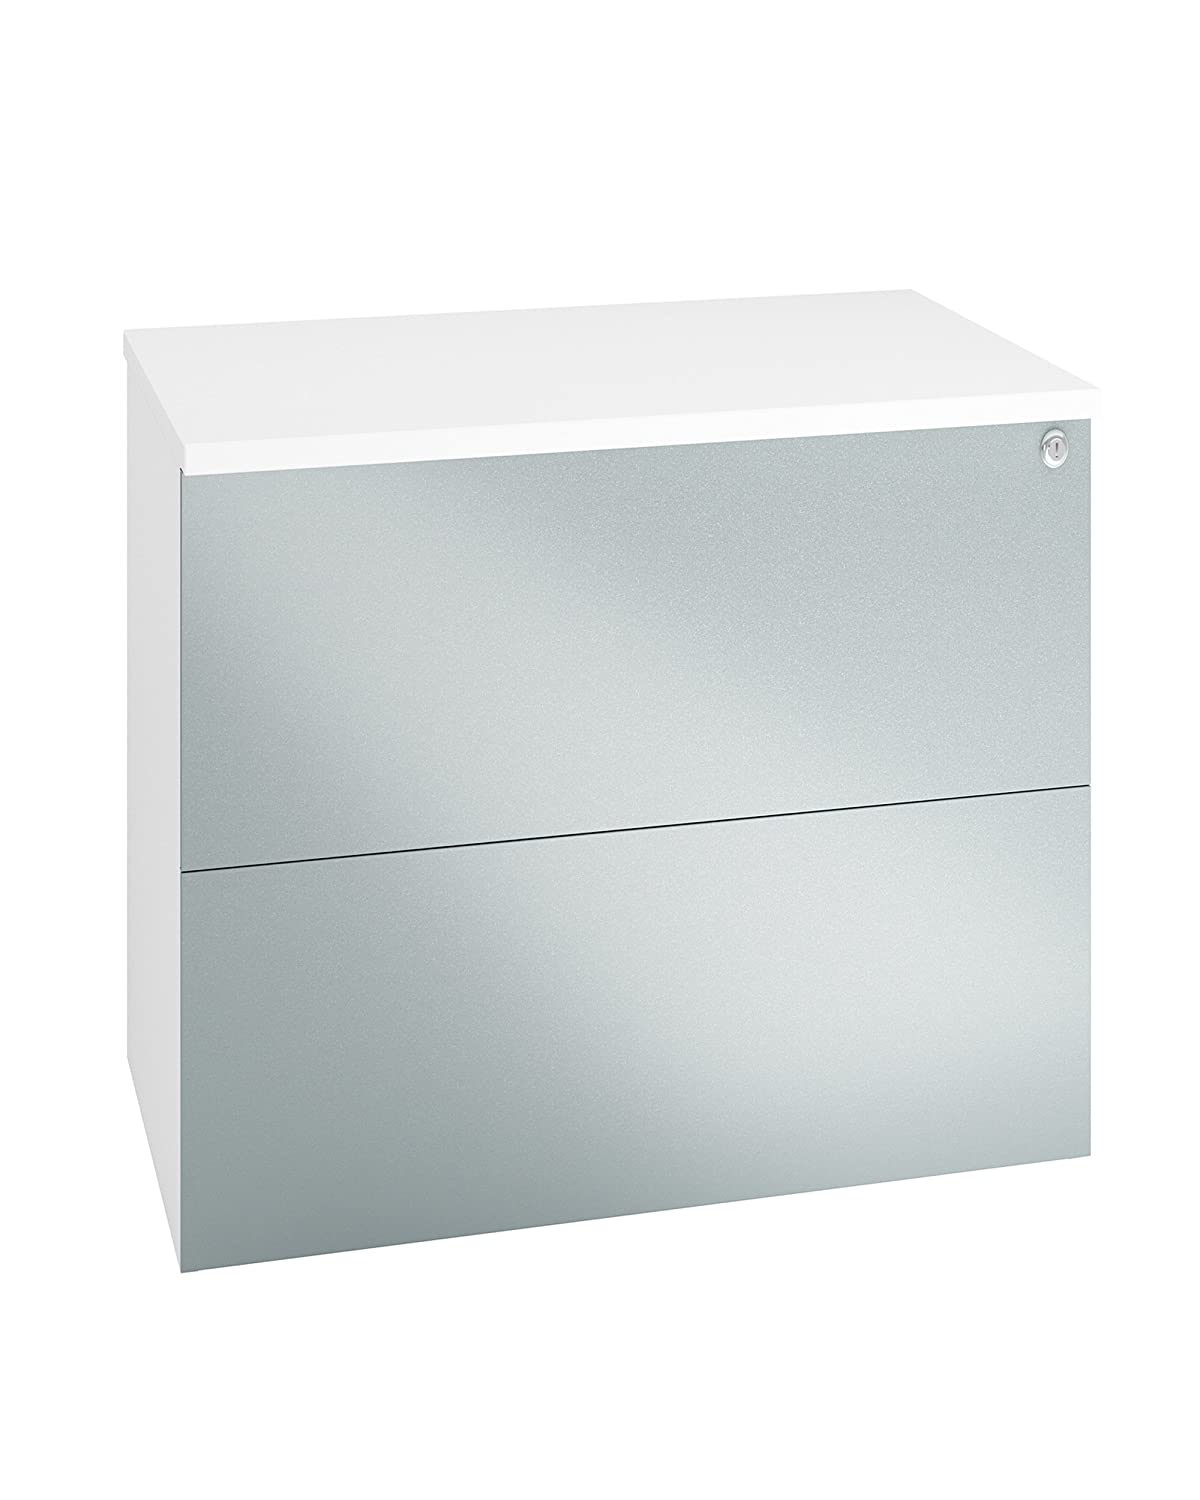 BLACK GLOSS PRISM ECO High Quality 2-Drawer Wooden Side-Filing Cabinet